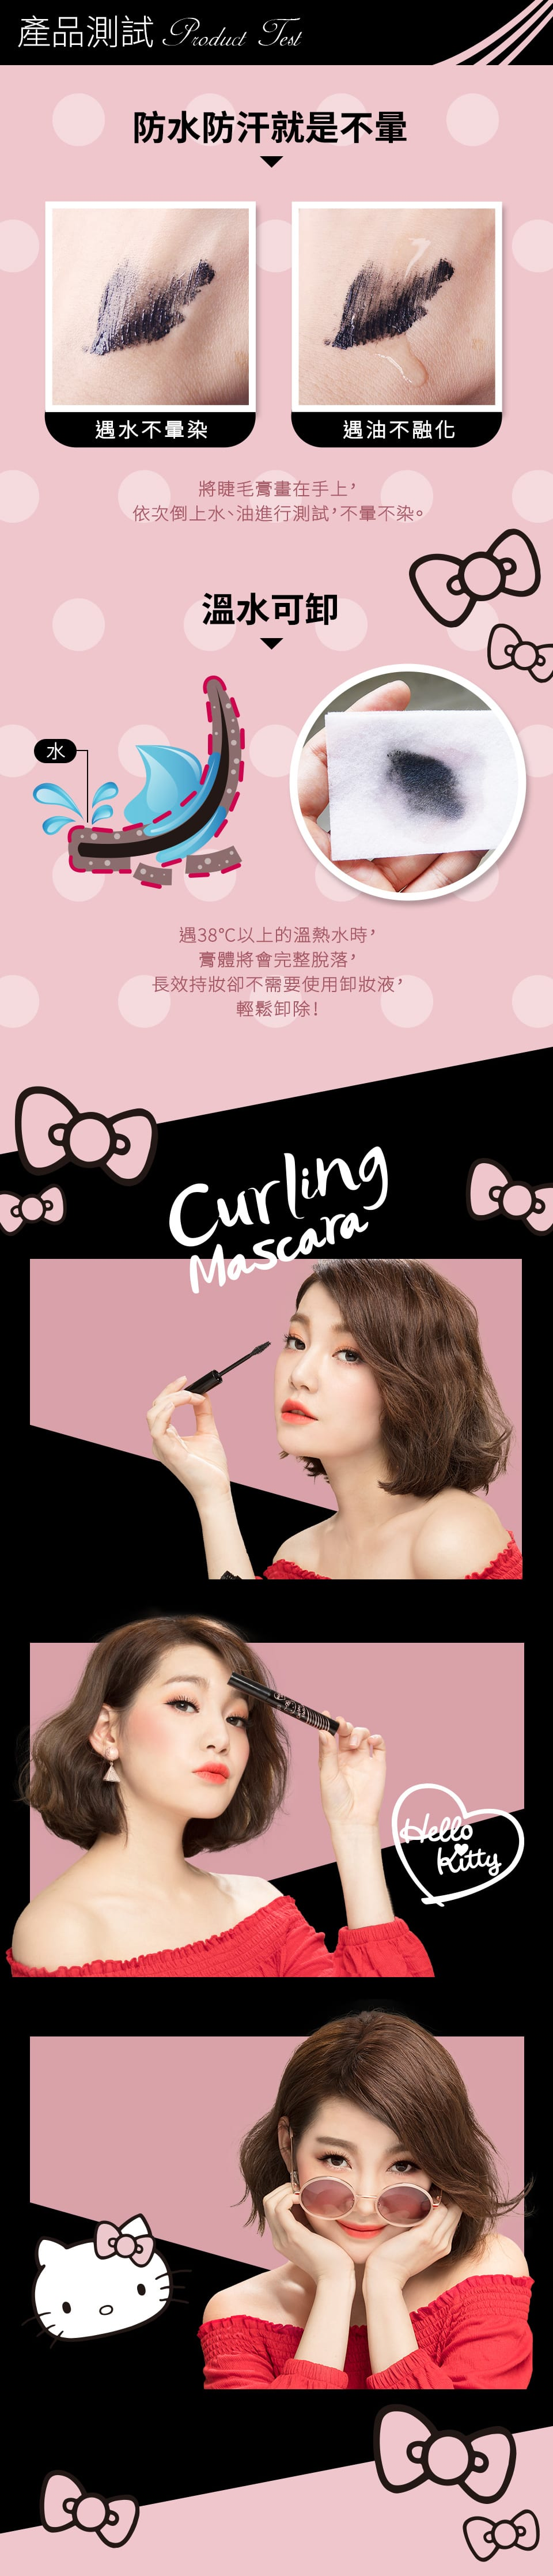 Solone Hello Kitty Mascara - Product test